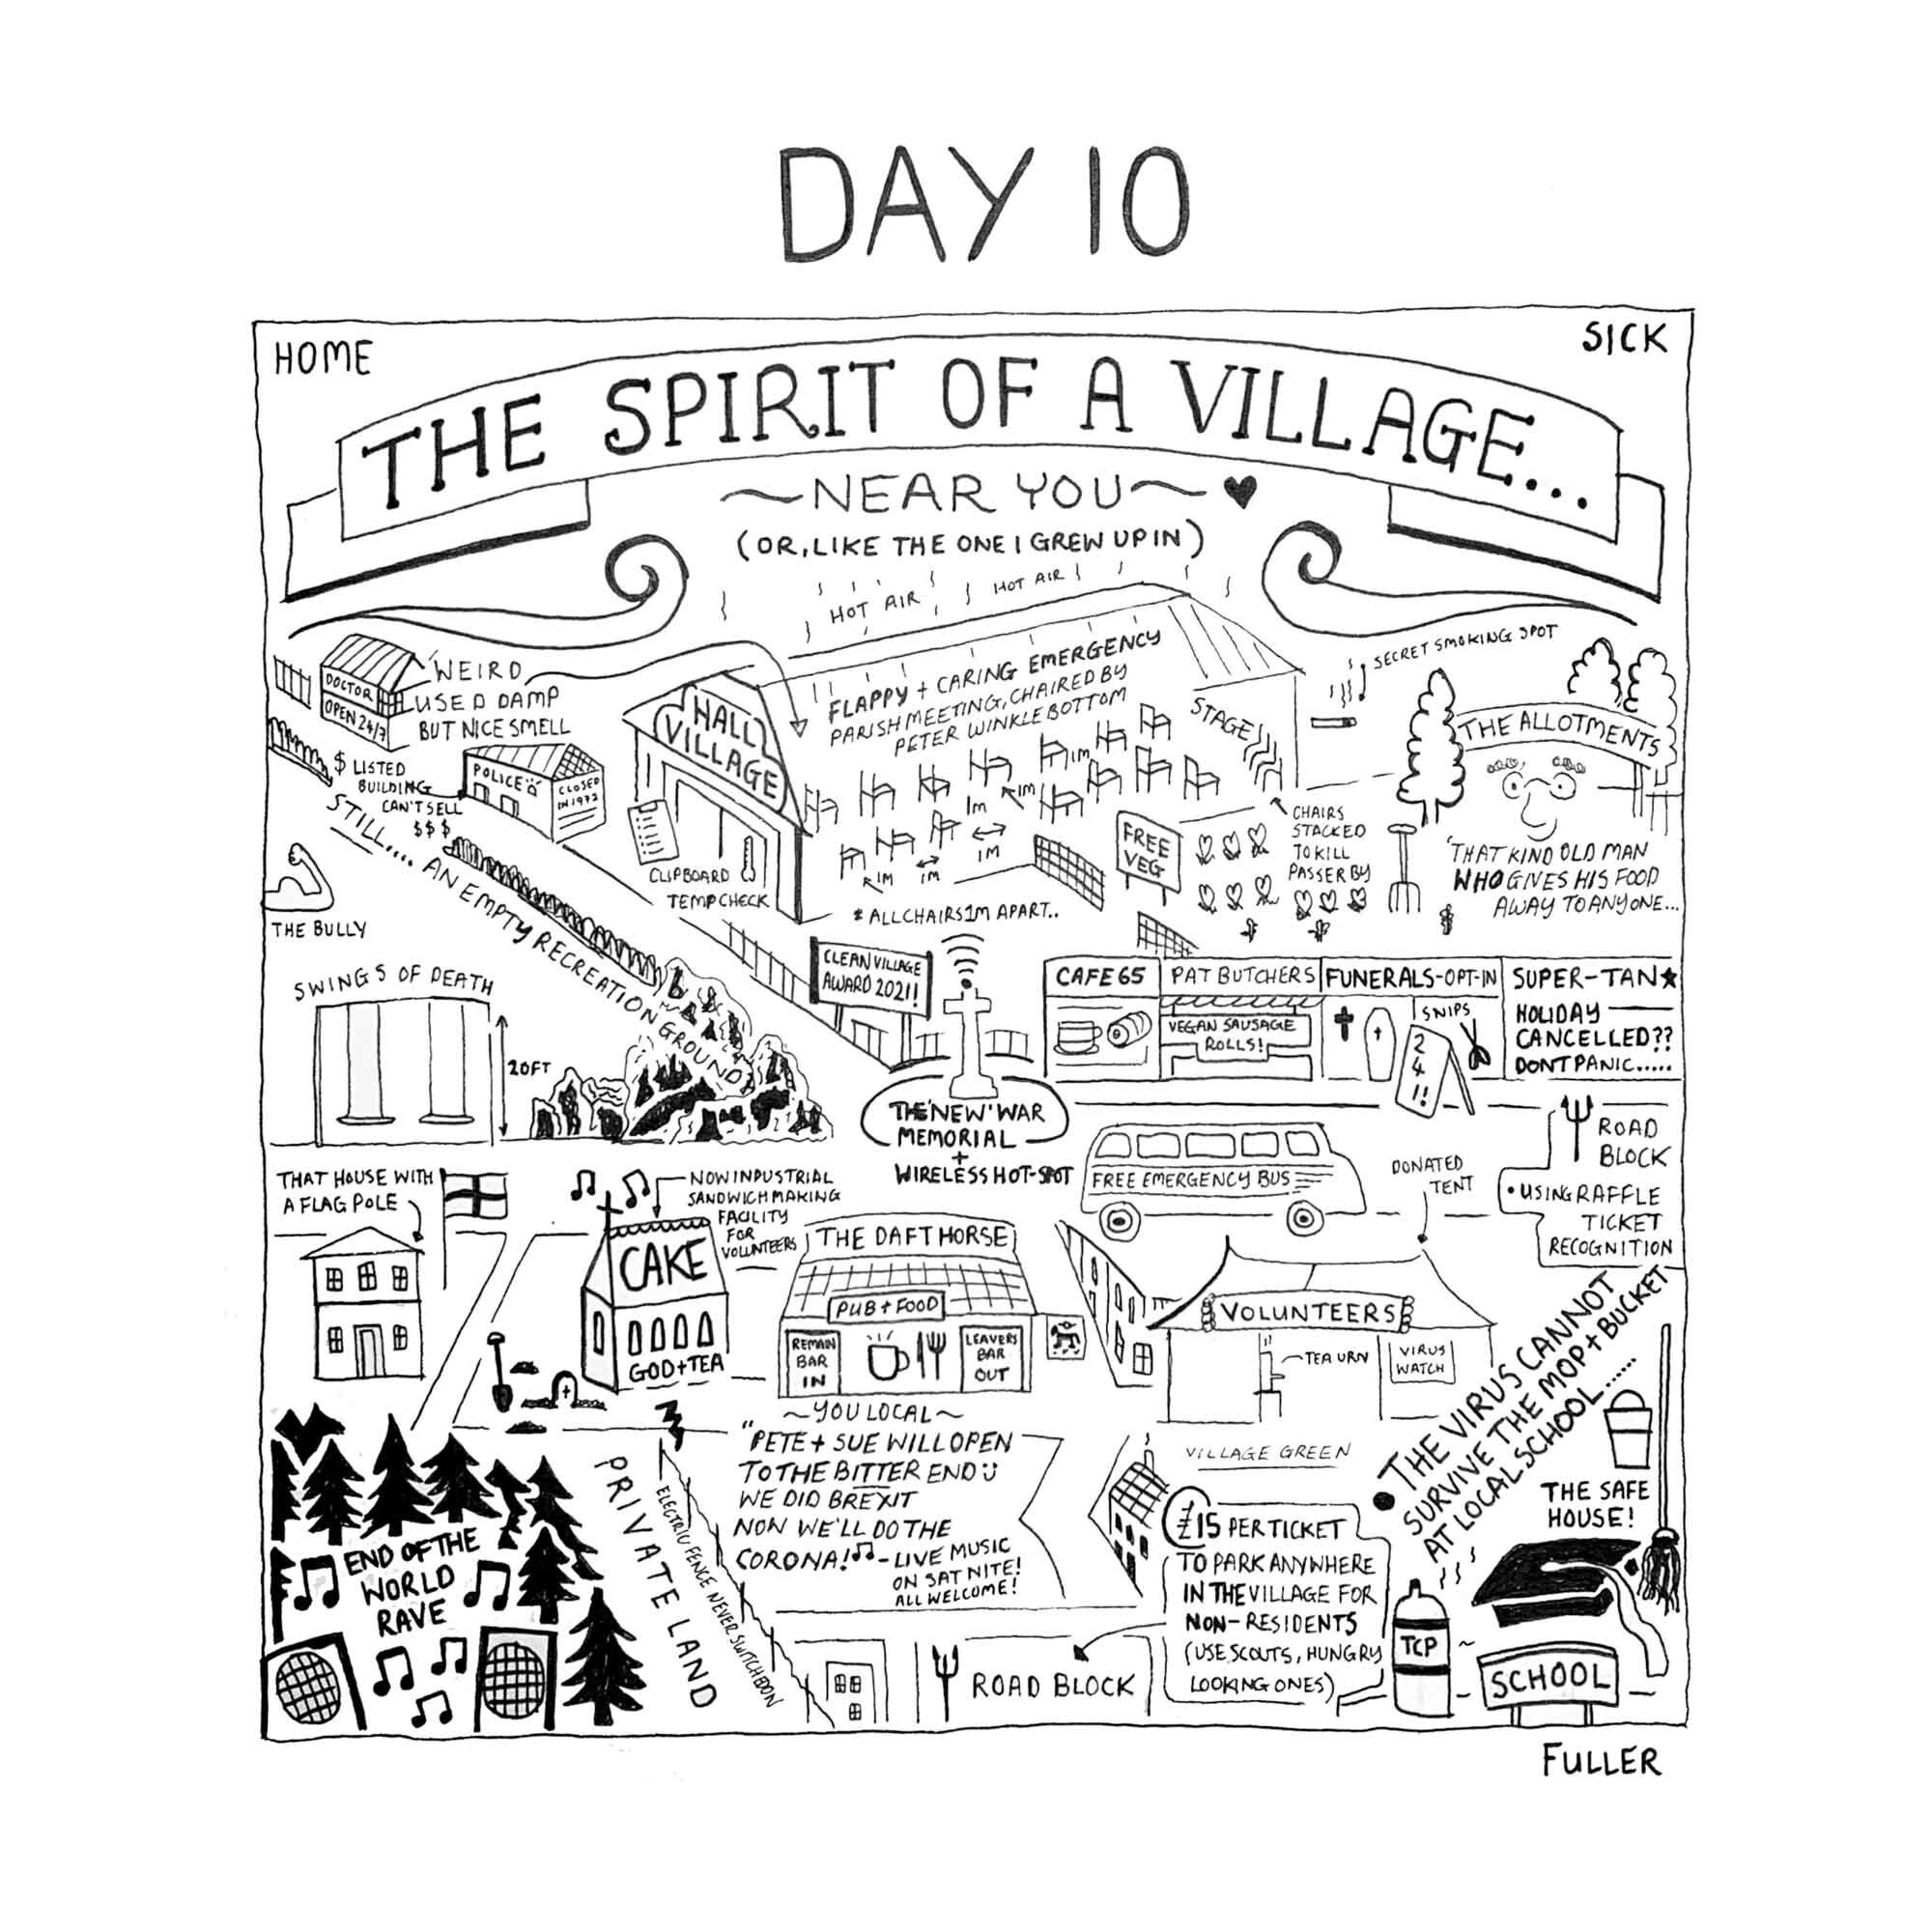 DAY 10 / Quarantine May By FULLER (Copy)